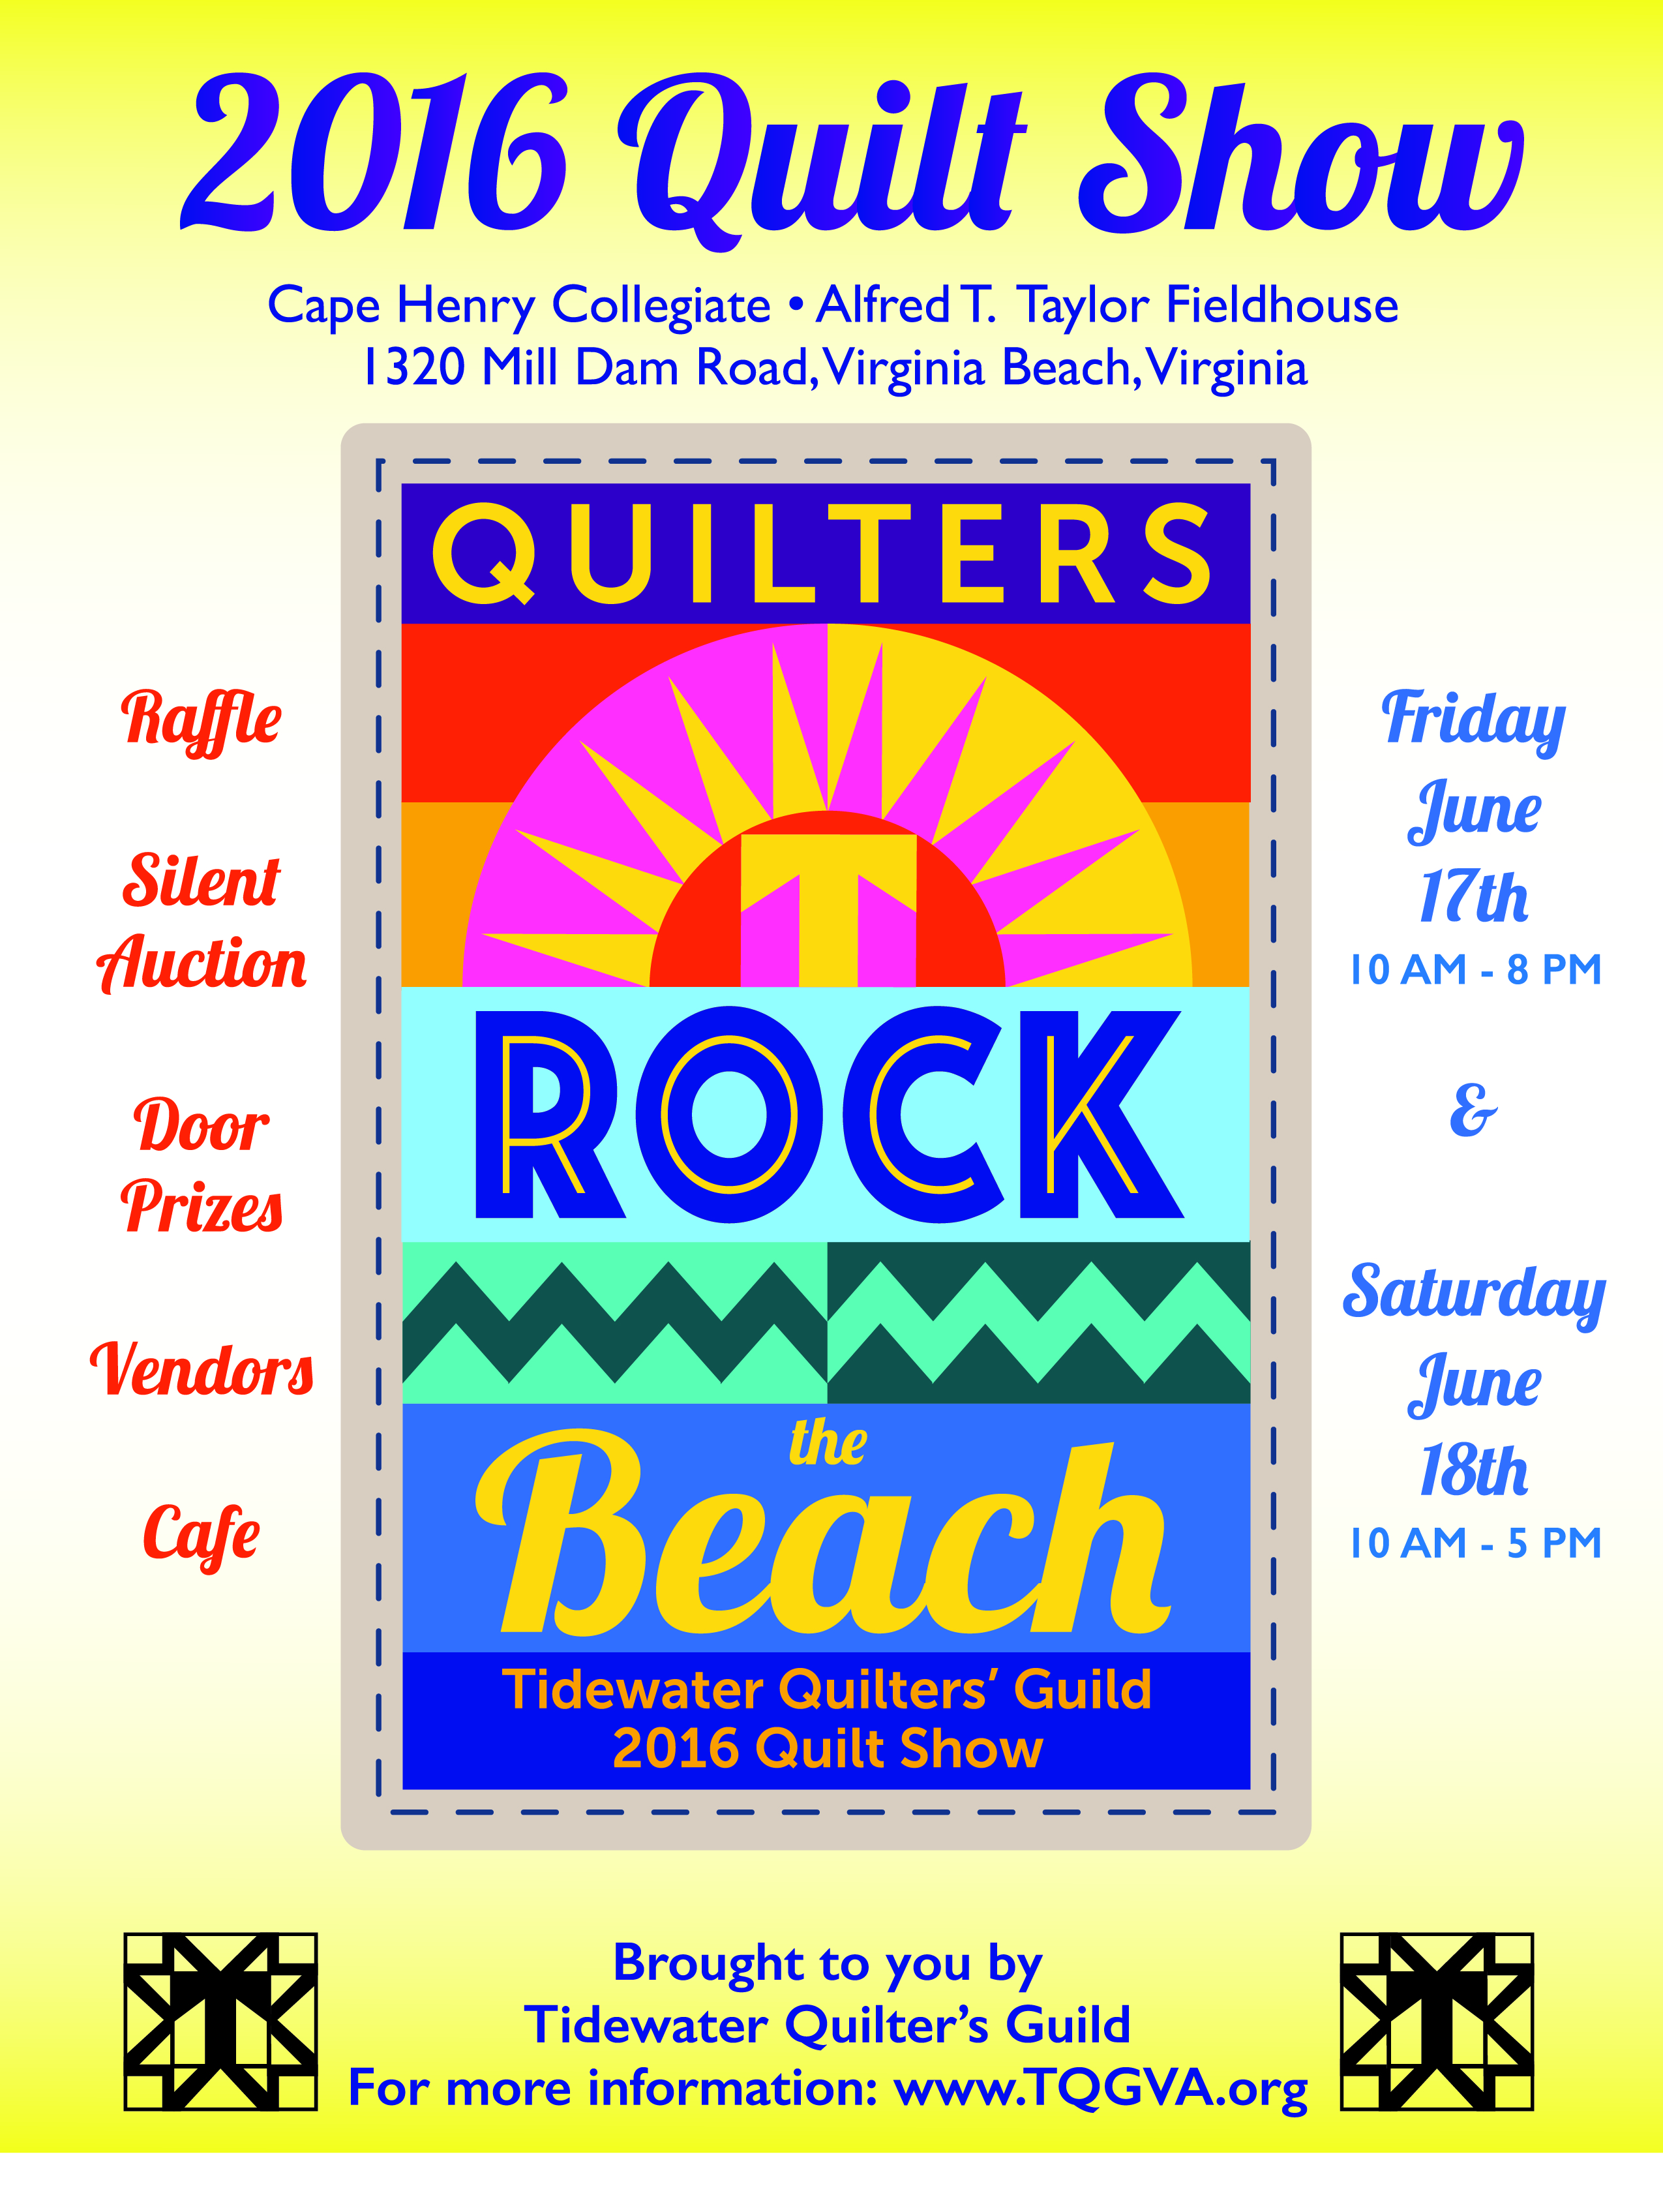 Quilters Rock the Beach